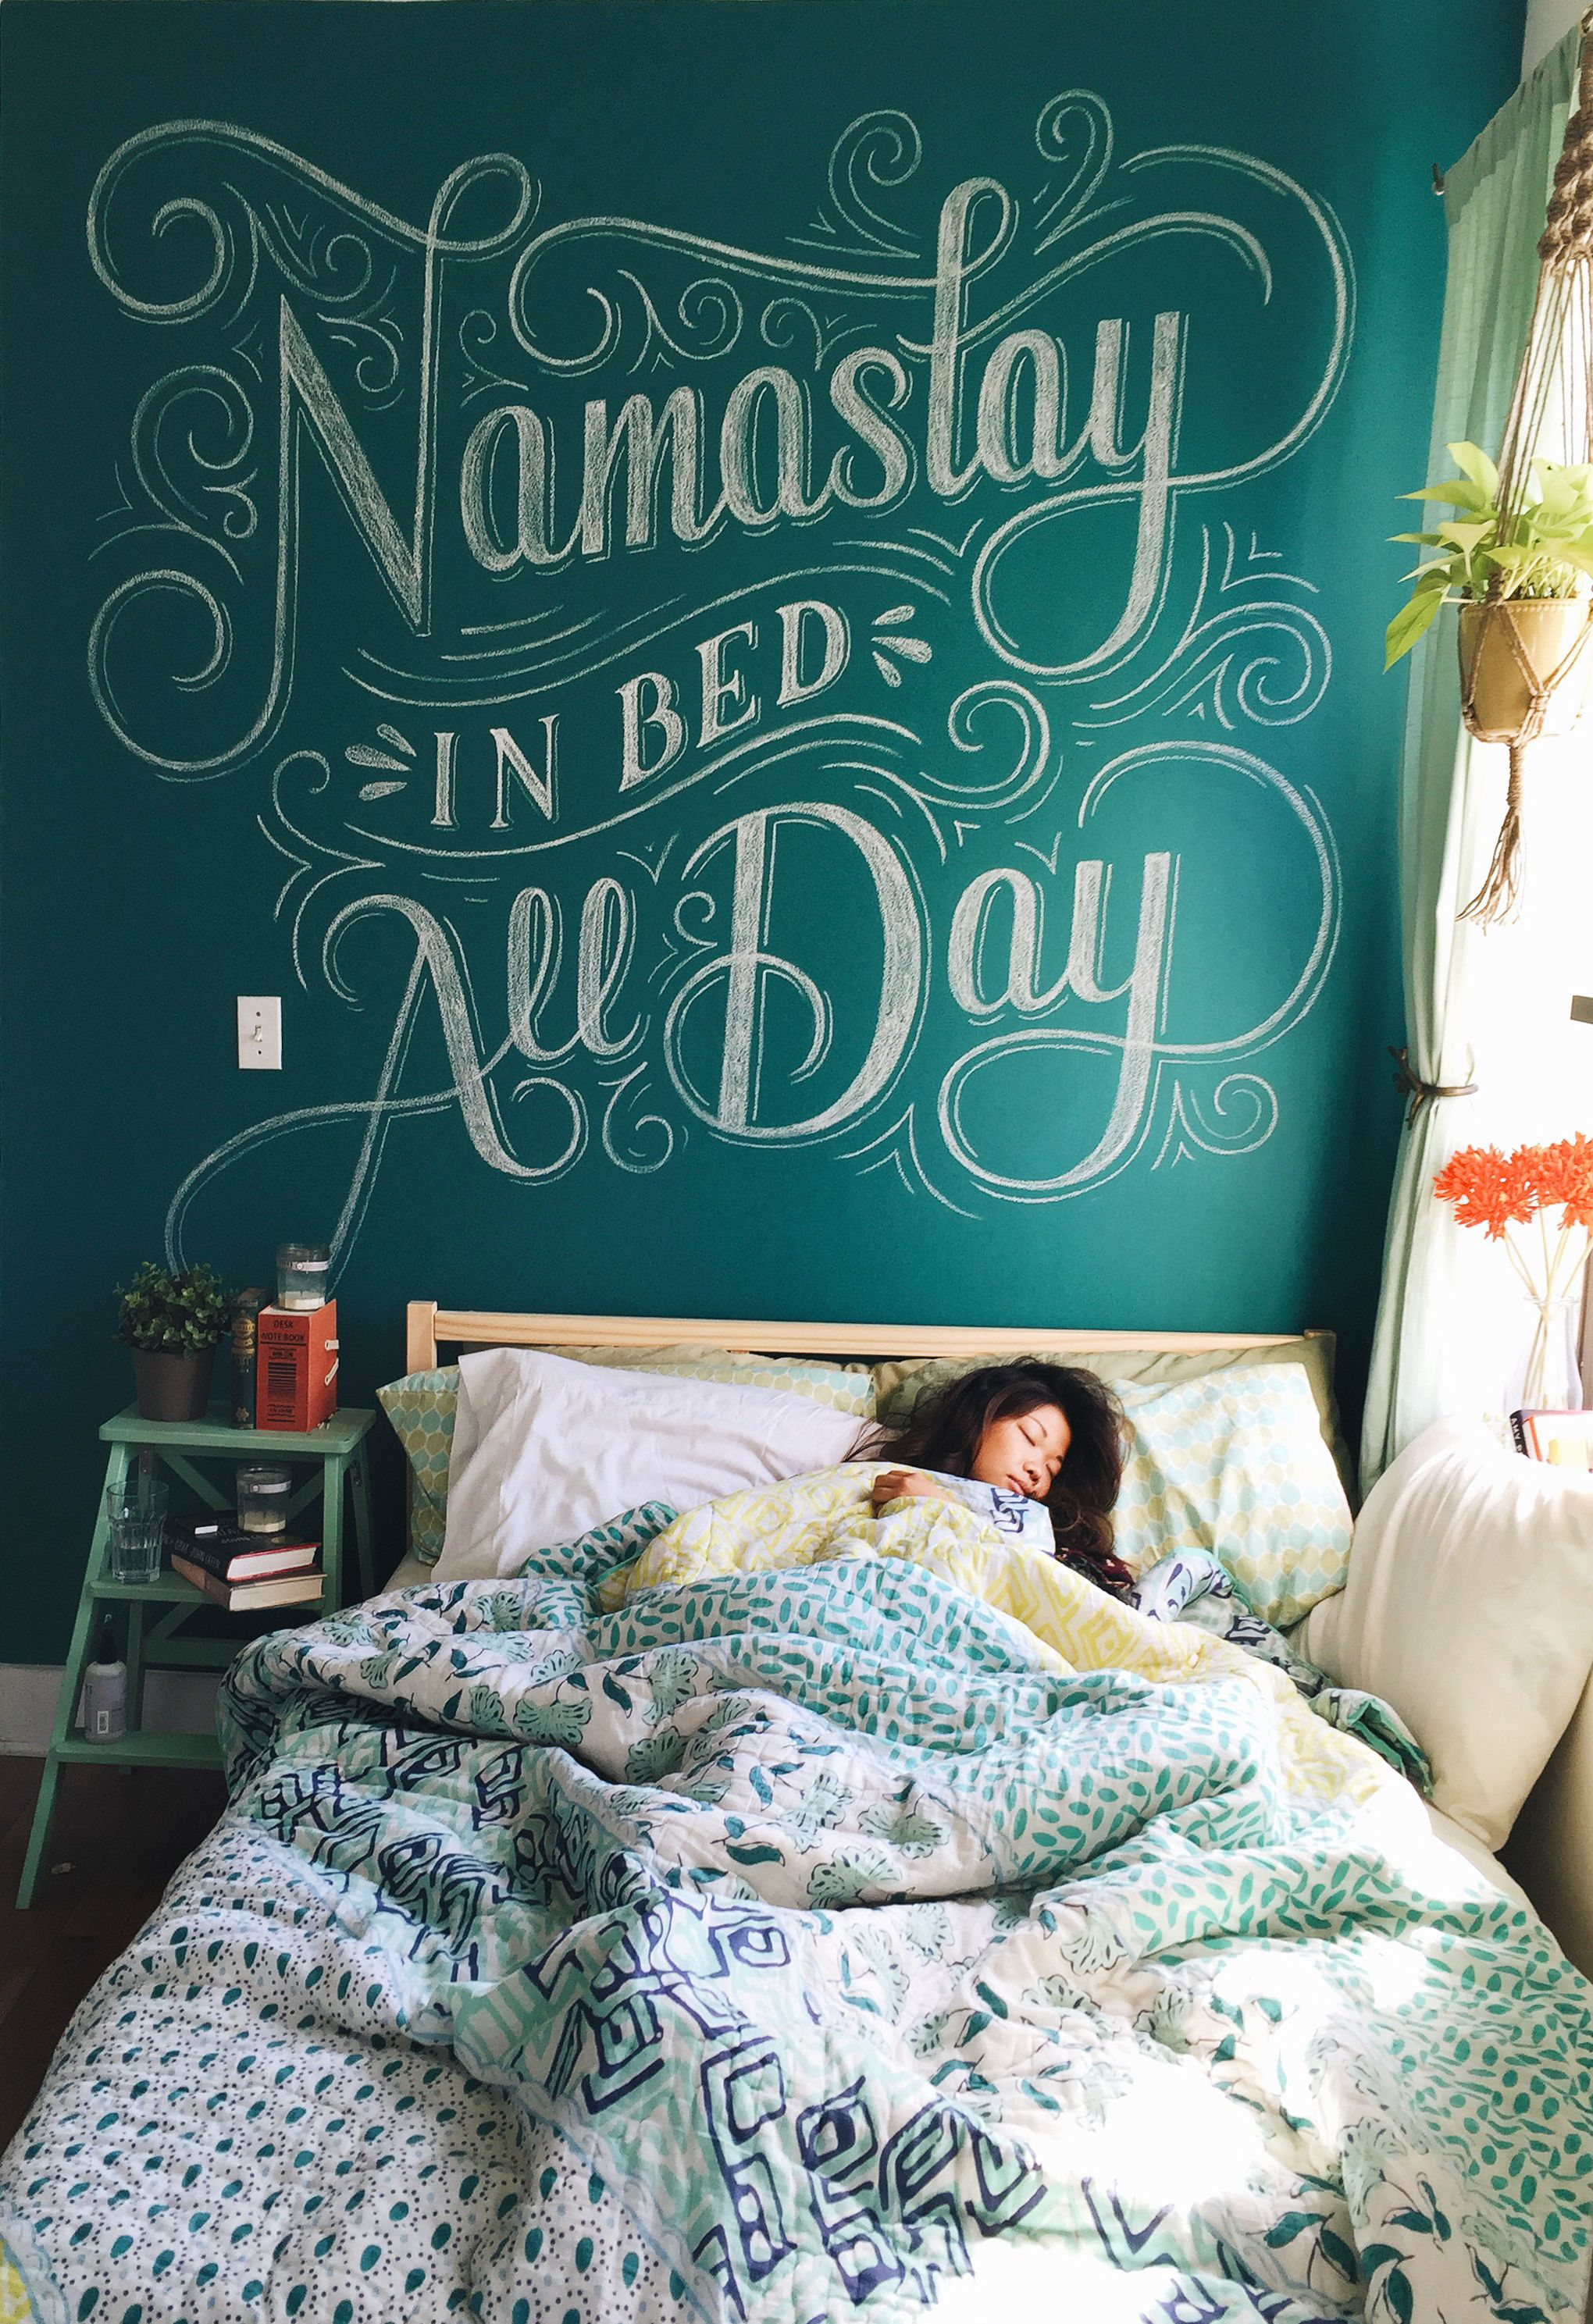 Namastay in Bed All Day by Lauren Hom Lettering